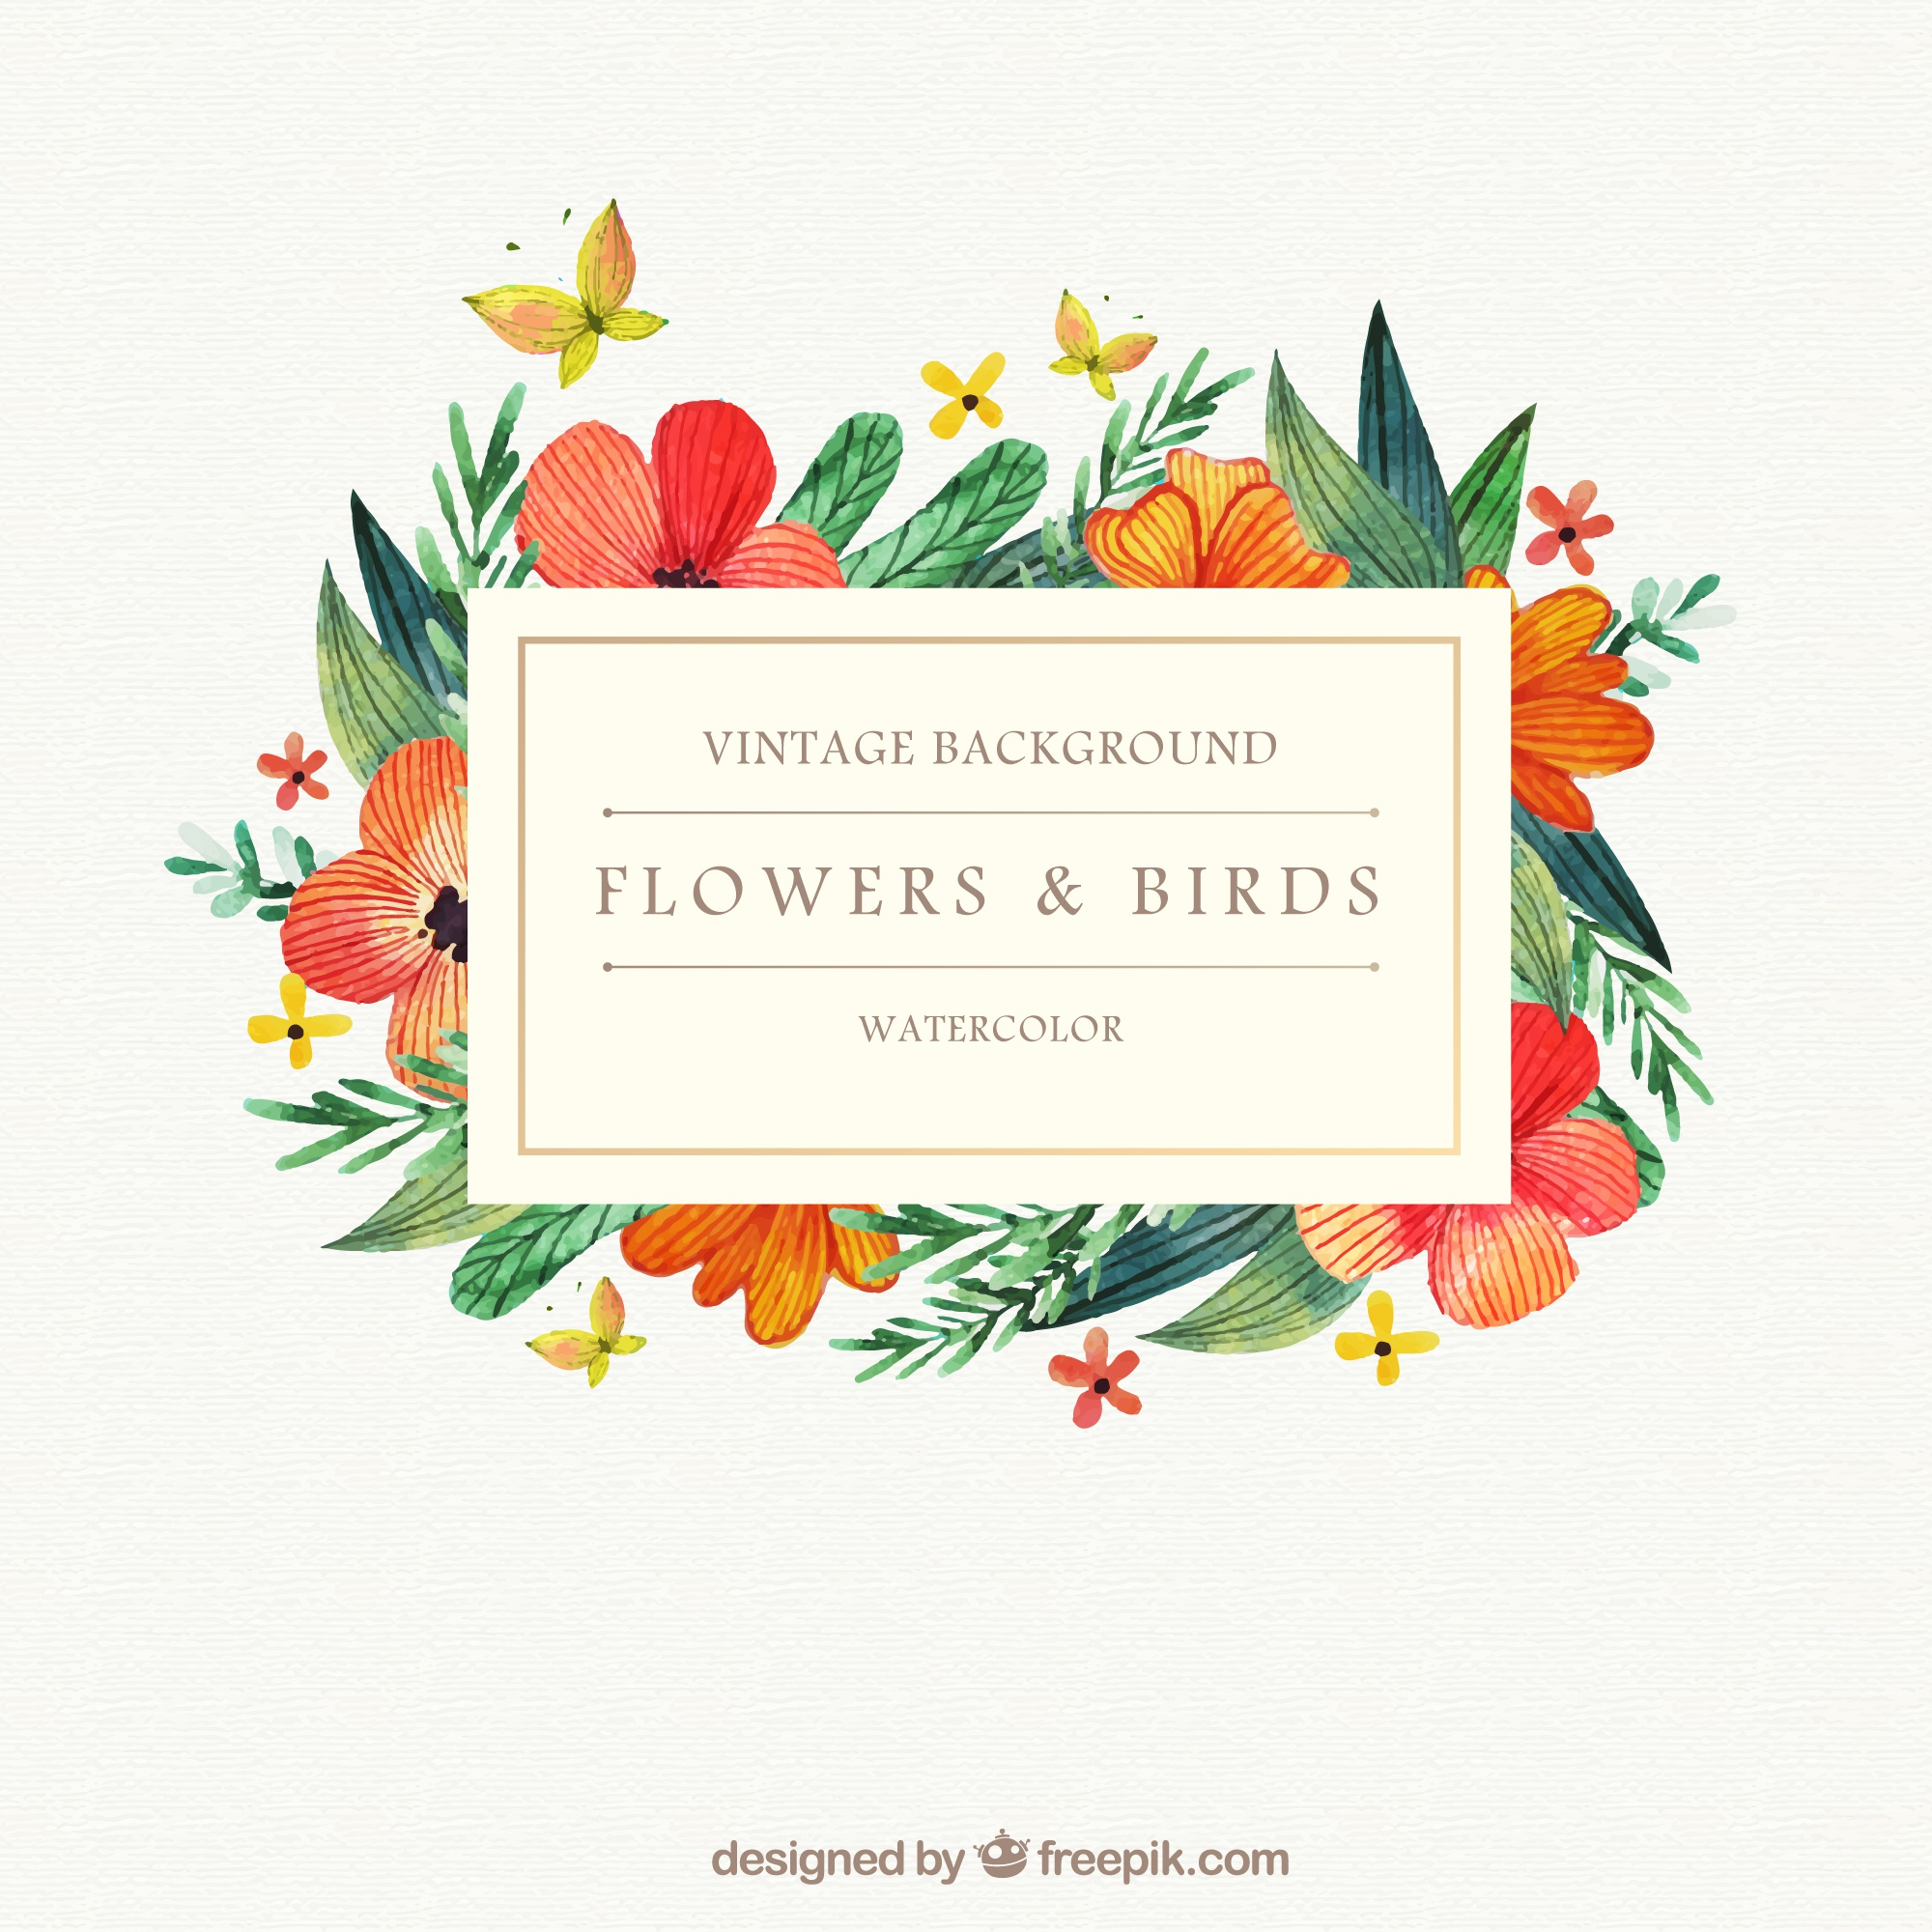 Watercolor flowers and birds background